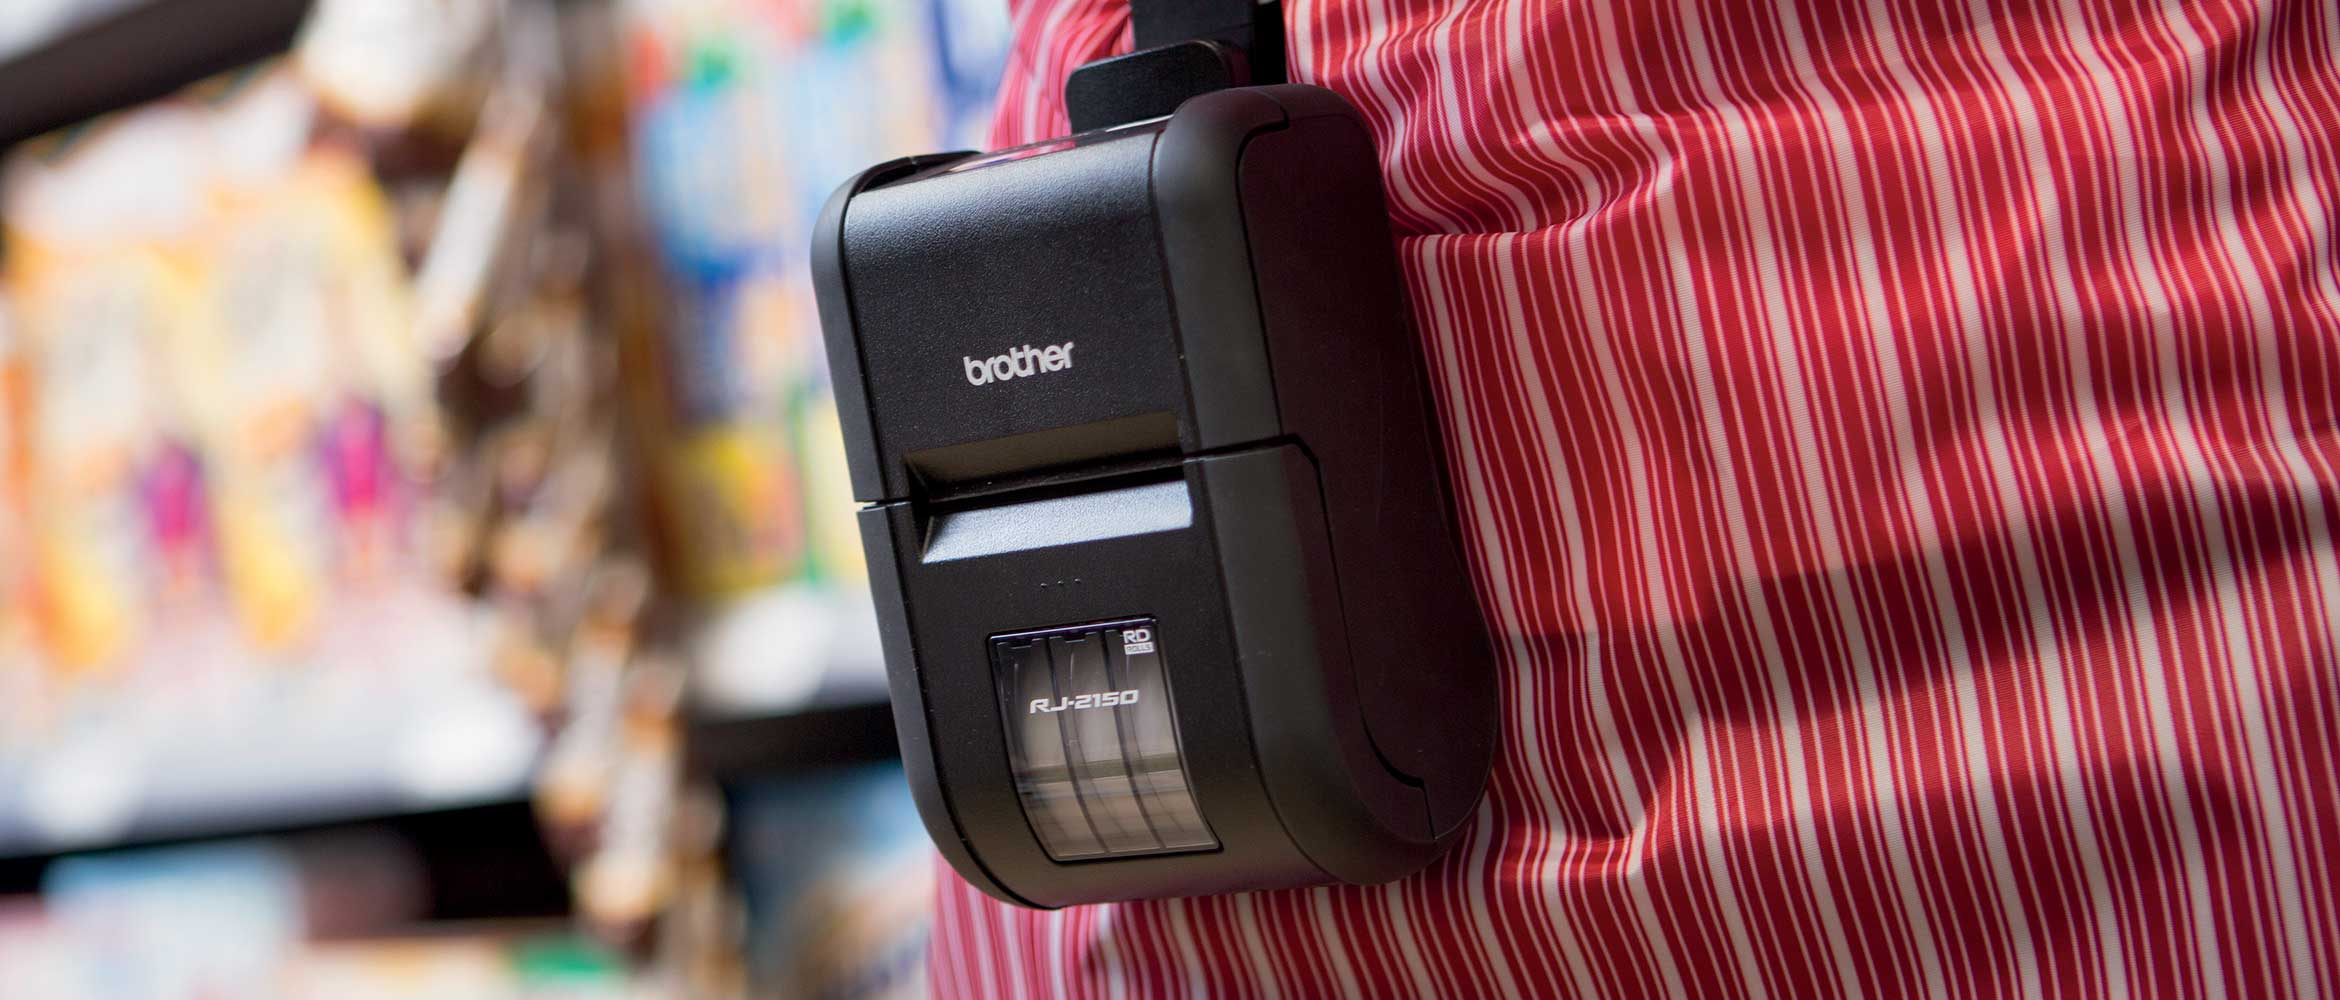 Shop assistant wearing a Brother mobile printer